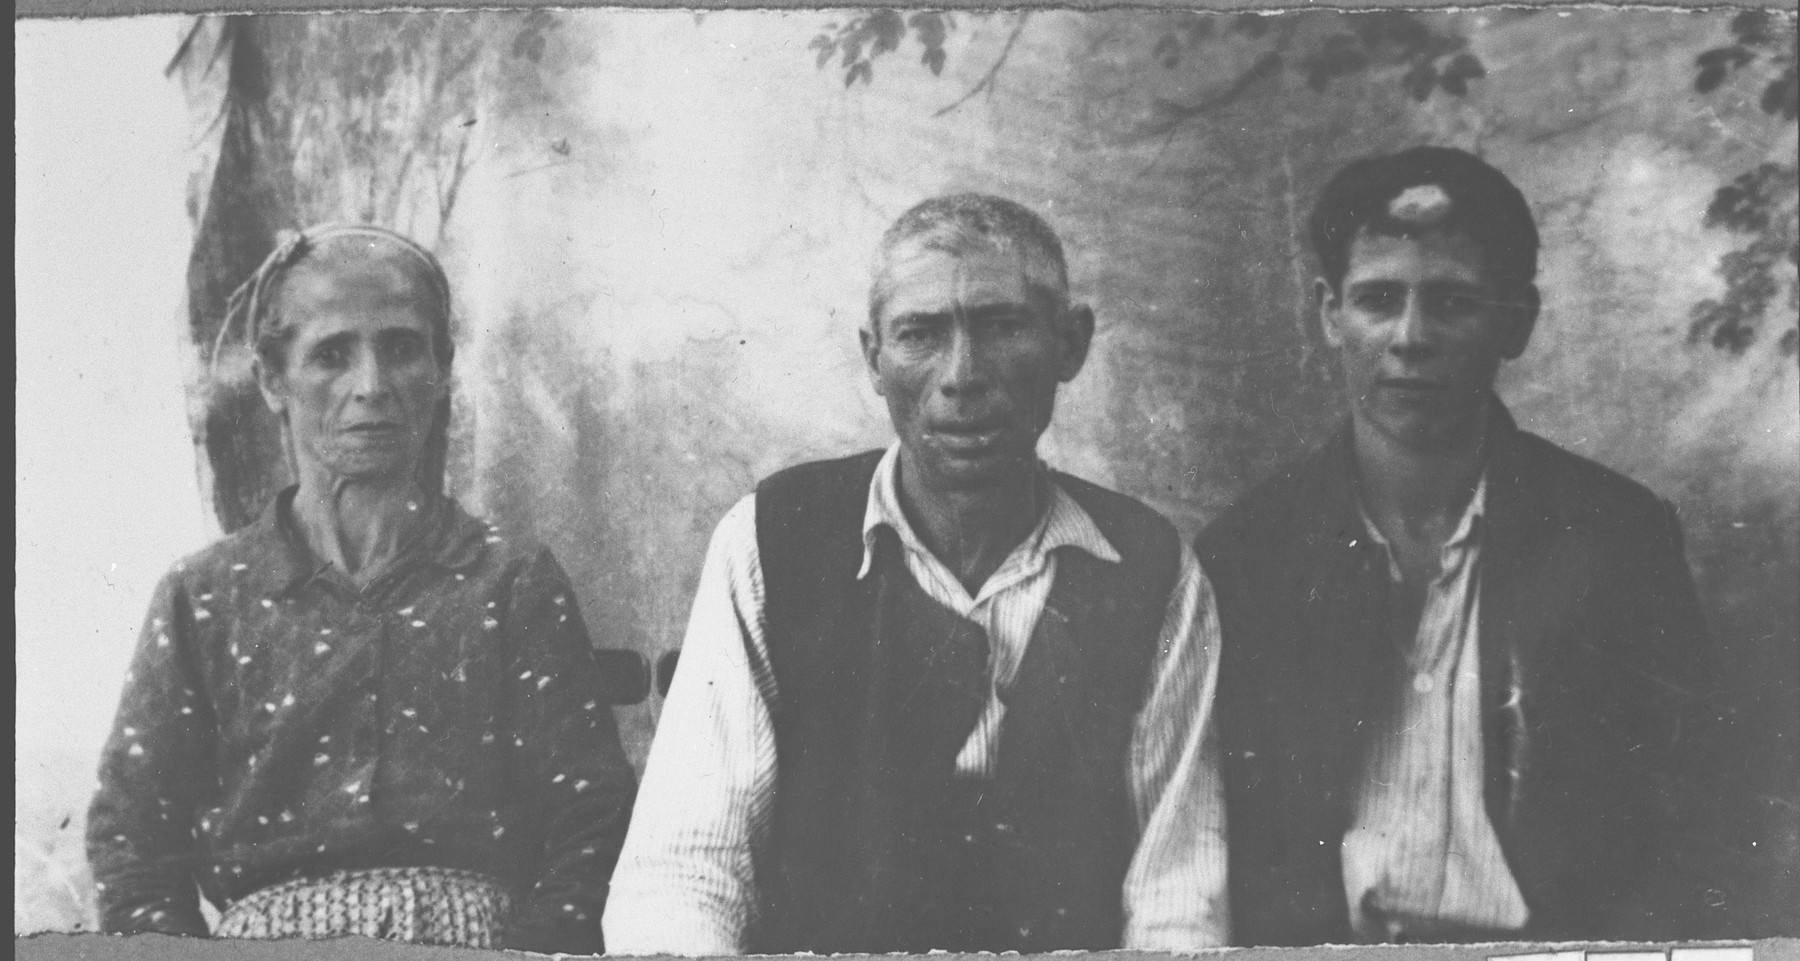 Portrait of Solomon Benjakar, his wife, Lia, and his son, Yosef.  Solomon was a handworker and Yosef, a student.  They lived at Punika 129 in Bitola.